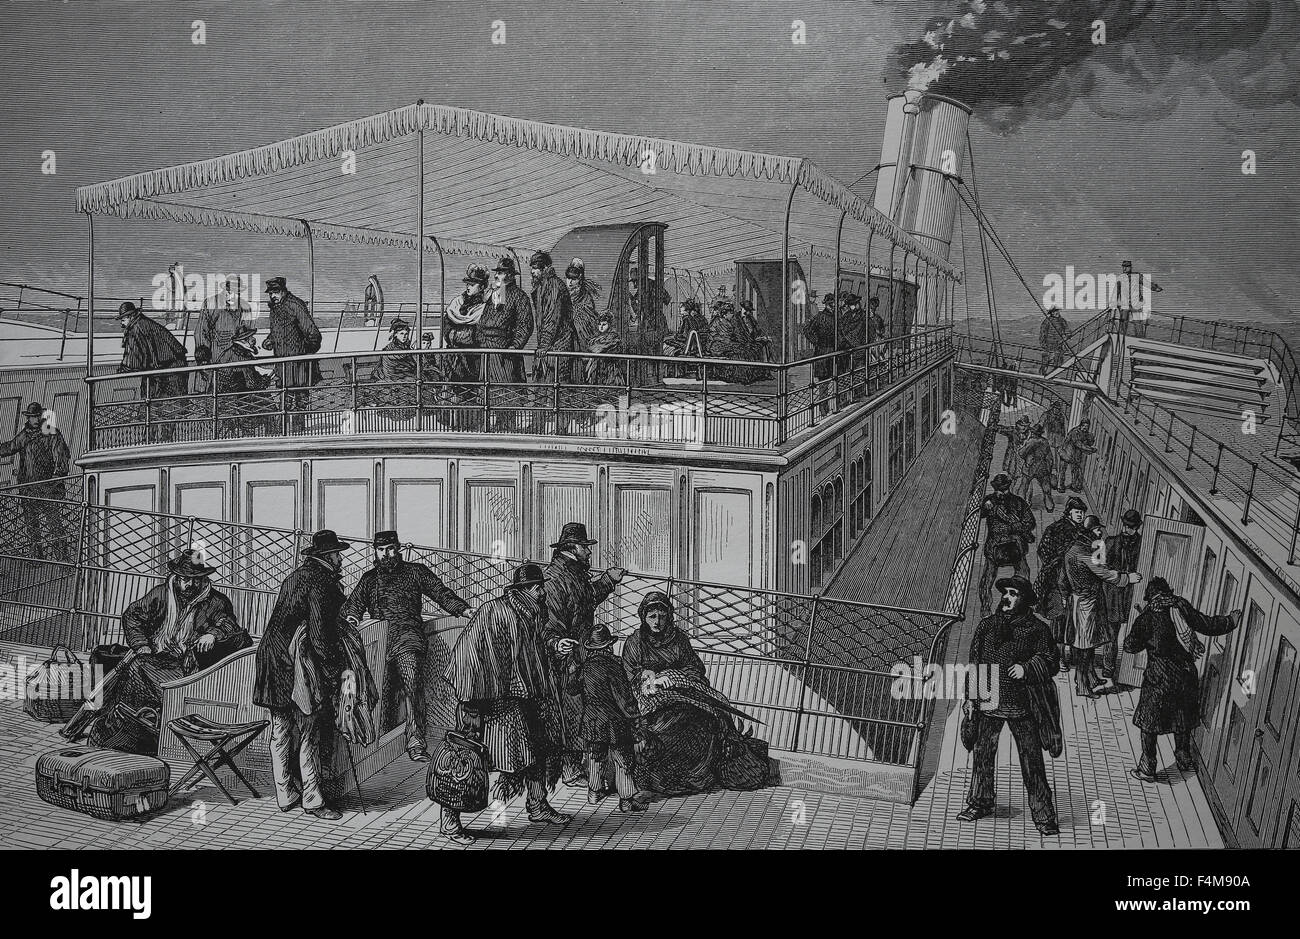 On board the emigrant ship. 19th century. Engraving. - Stock Image